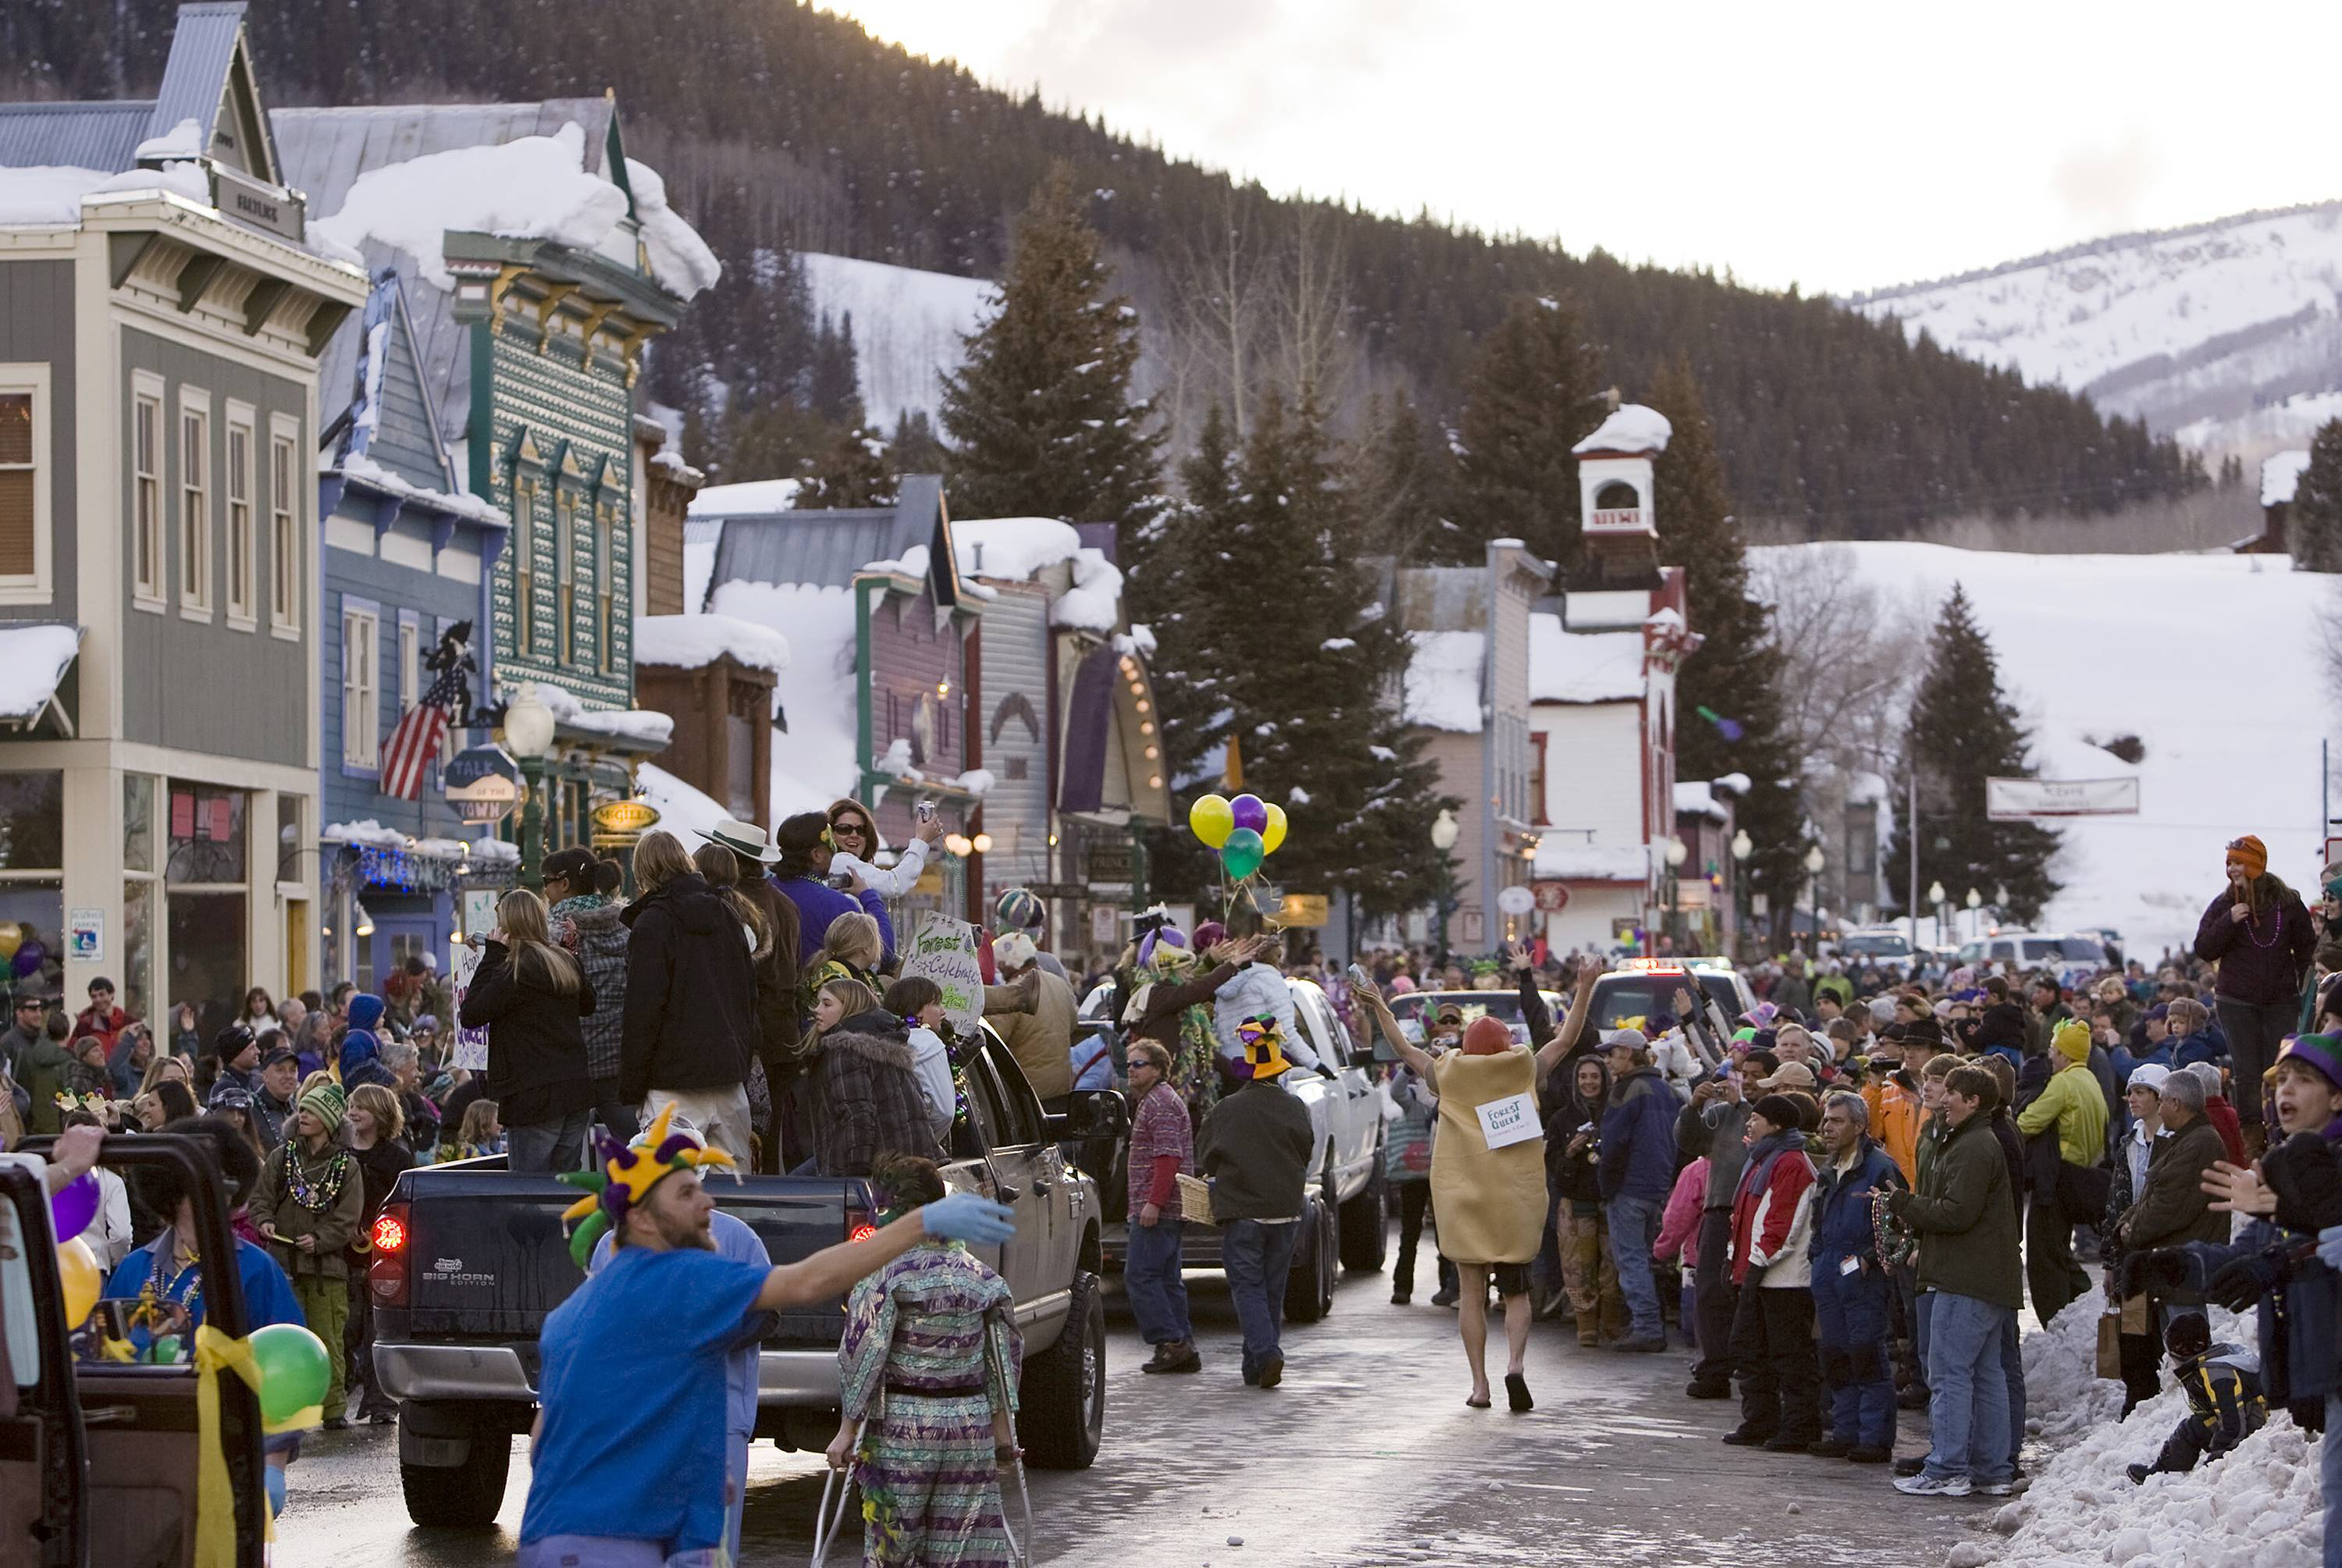 Mardi Gras is celebrated in Crested Butte, Colo., Feb. 24, 2009. Some people in normally laid back Crested Butte, are not up for a secretive Bud Lite plan to paint their mountain town blue and turn it into a fantasy city for an ad campaign.